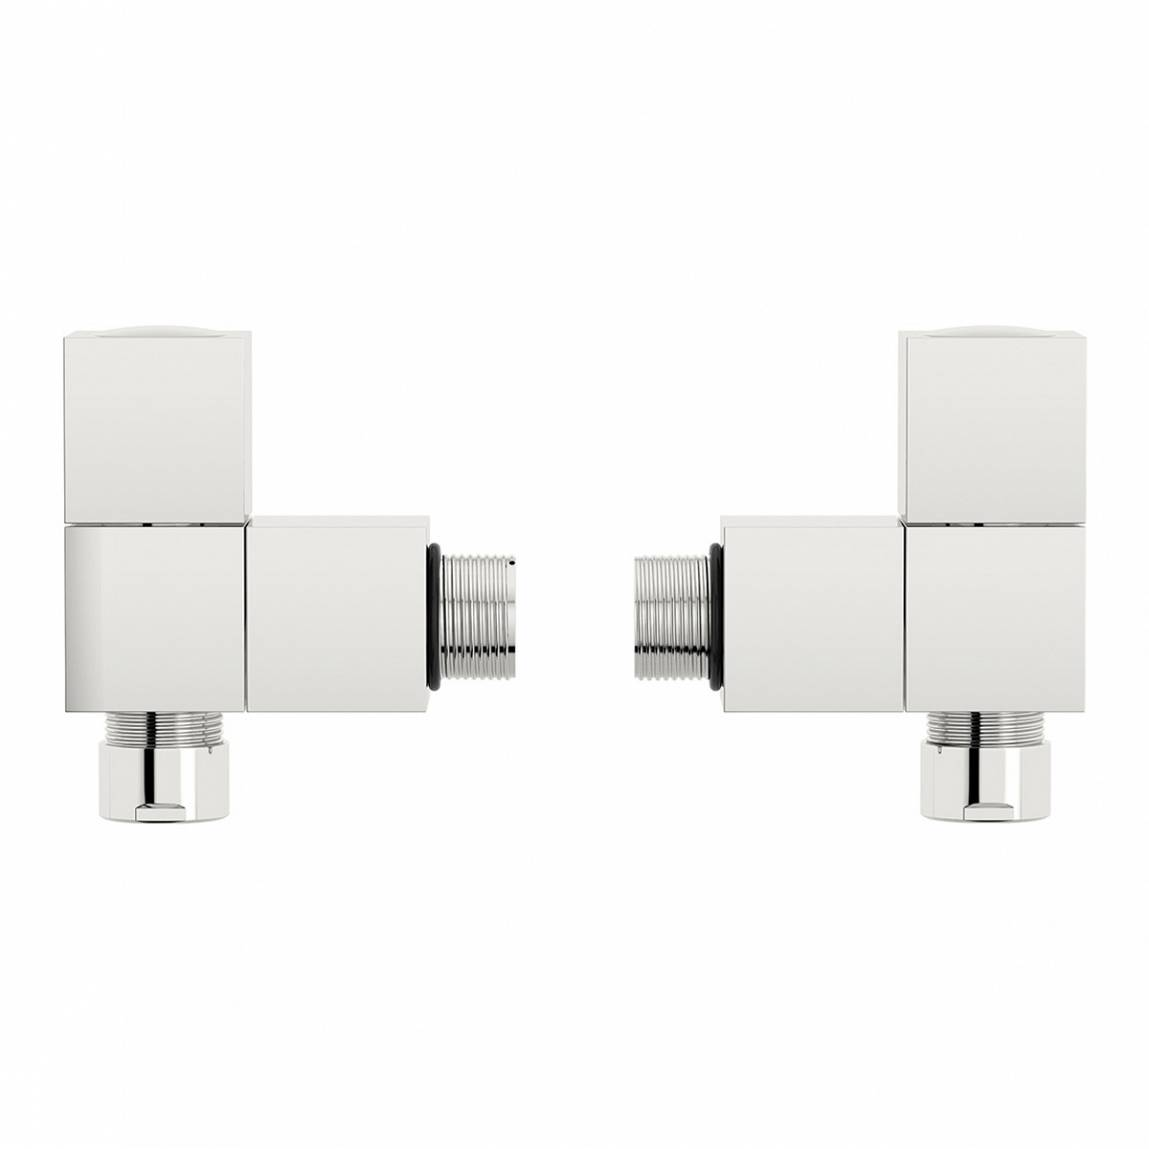 Image of Square Angled Radiator Valves